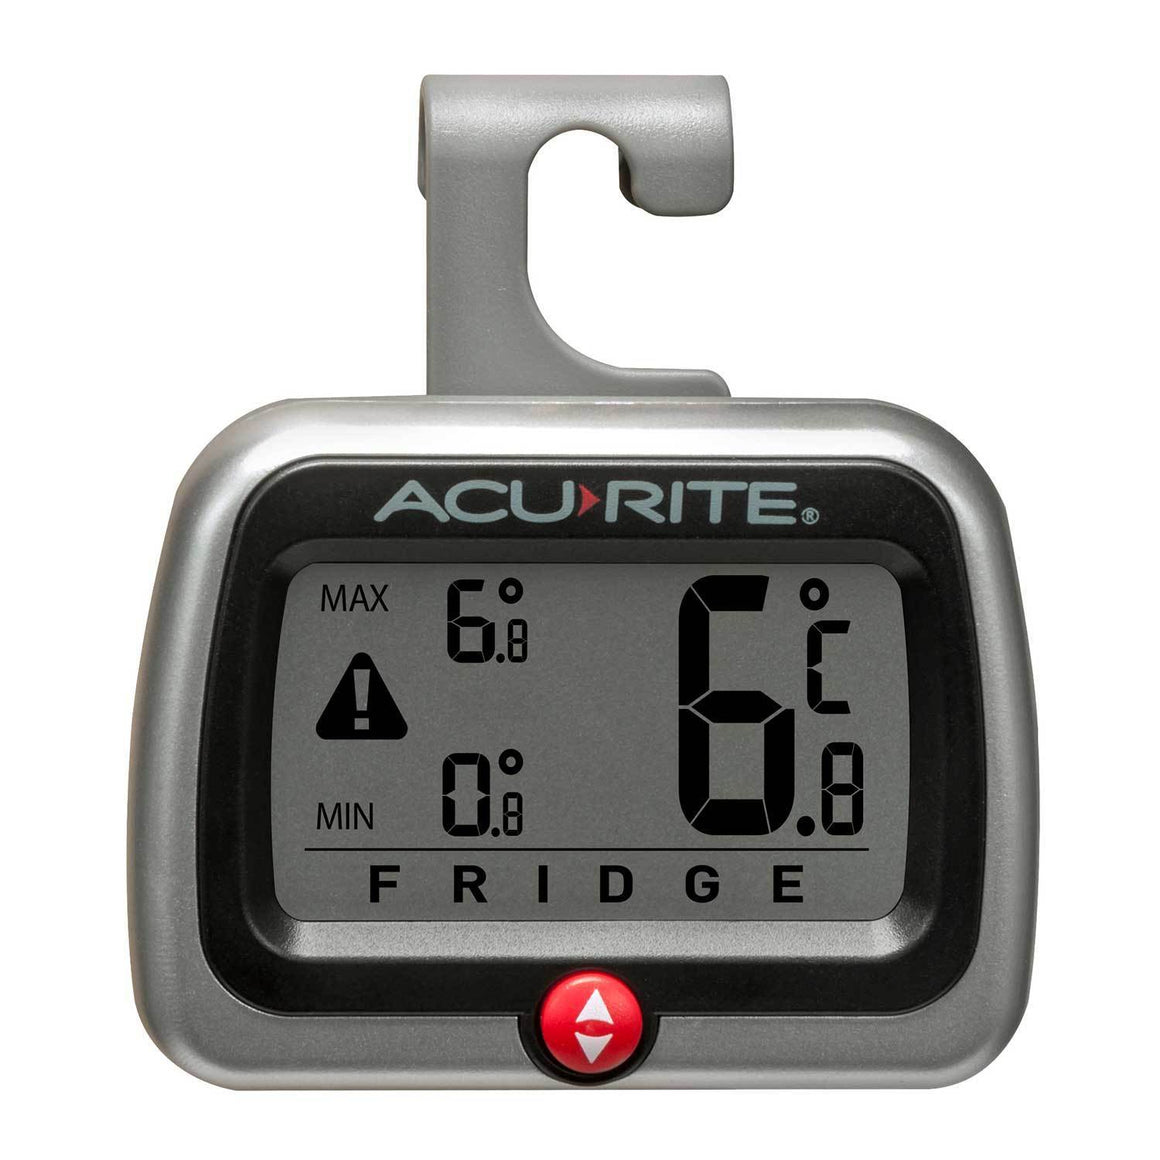 Acurite Digital Compact Fridge & Freezer Thermometer - Stuff-n-Things